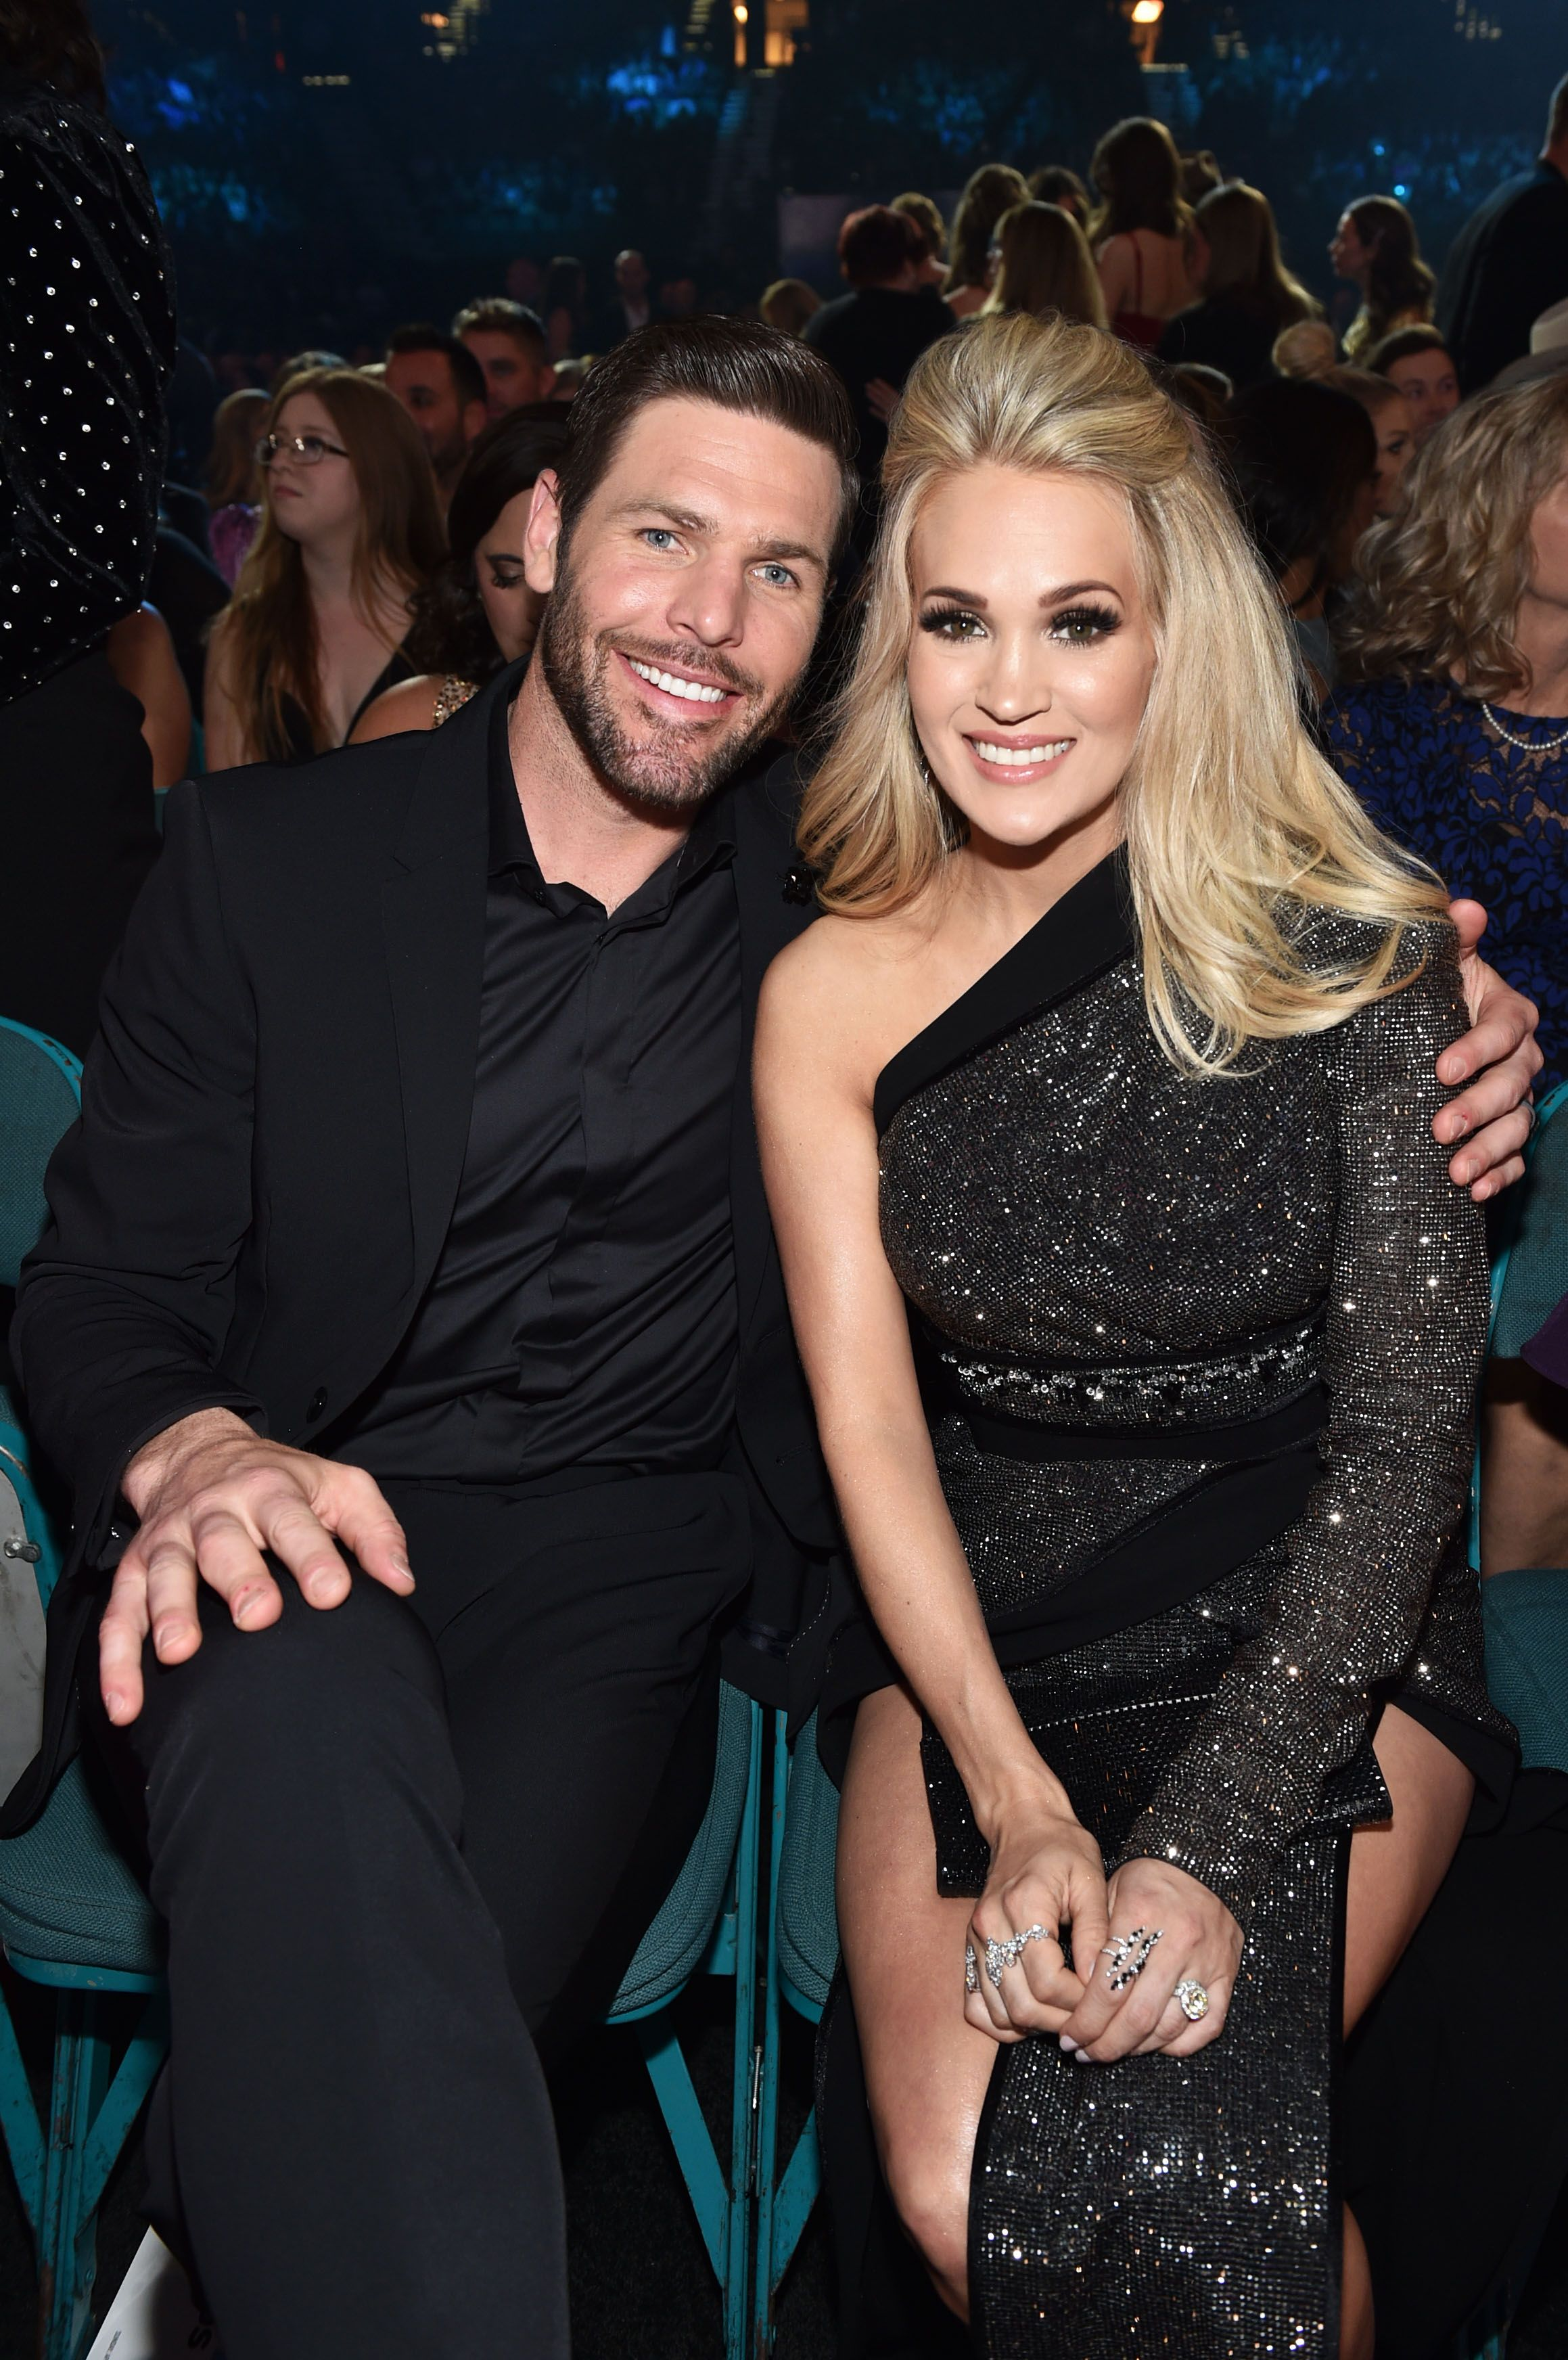 Carrie Underwood Had the Sassiest Response When Husband Mike Fisher Critiqued Her Music